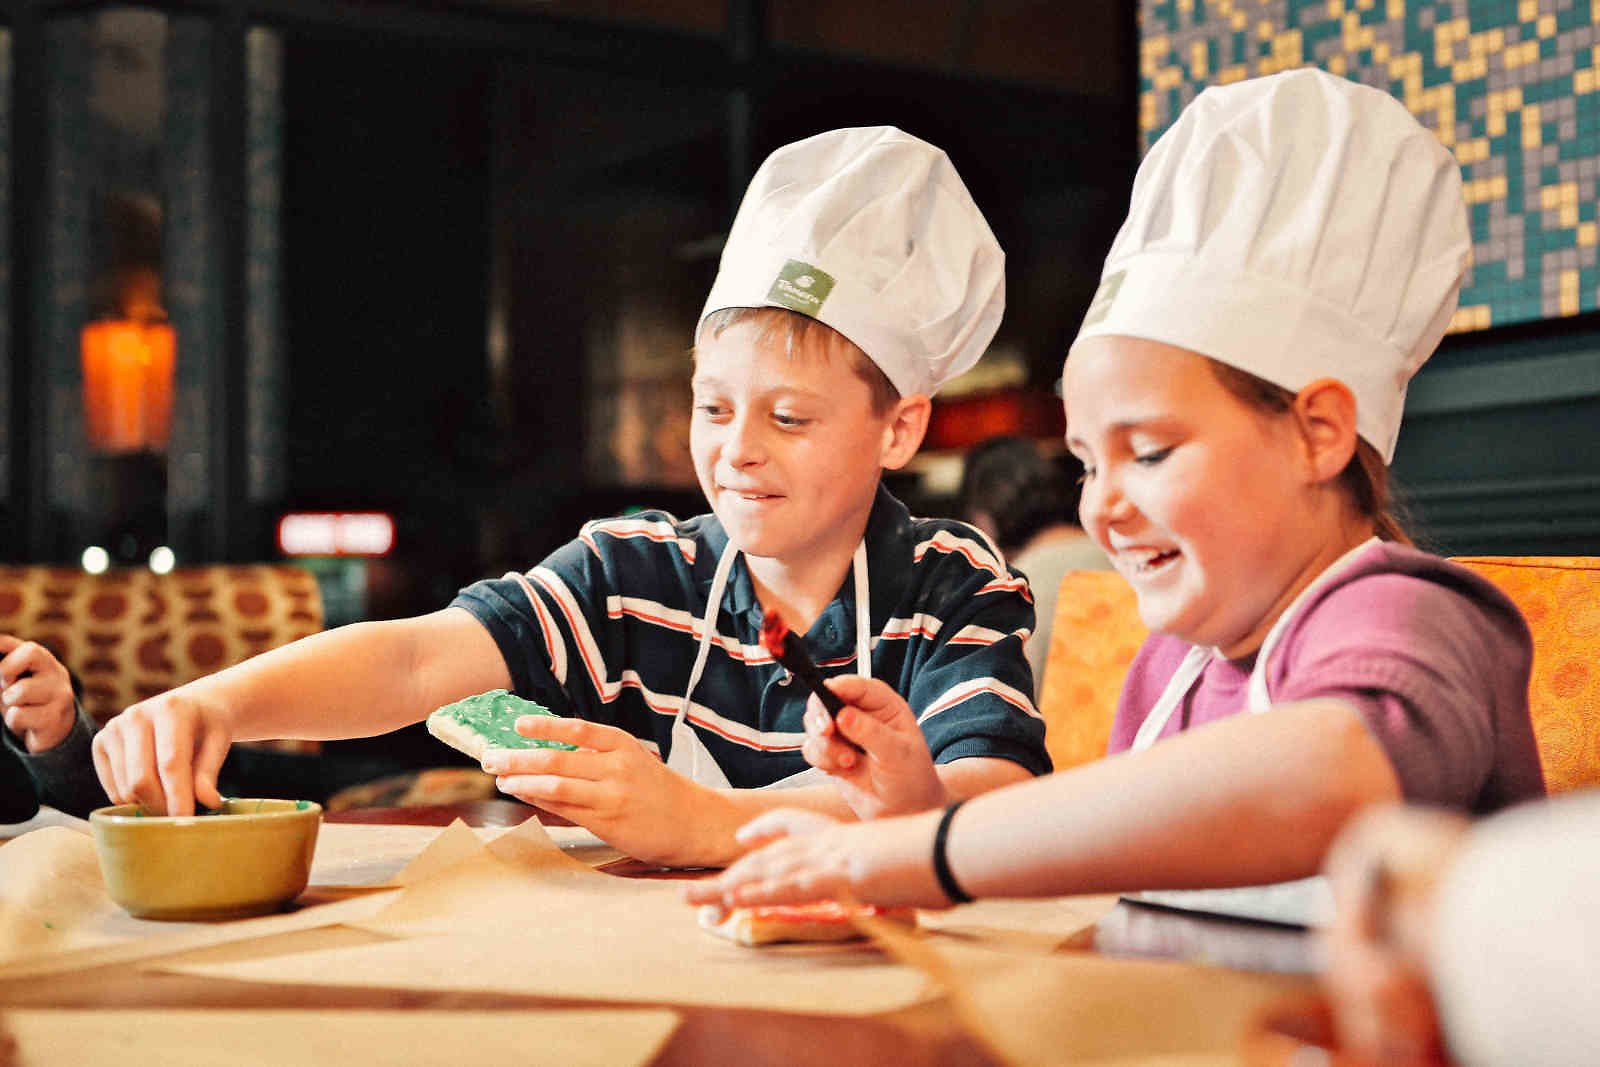 Panera's Bakers-In-Training Program